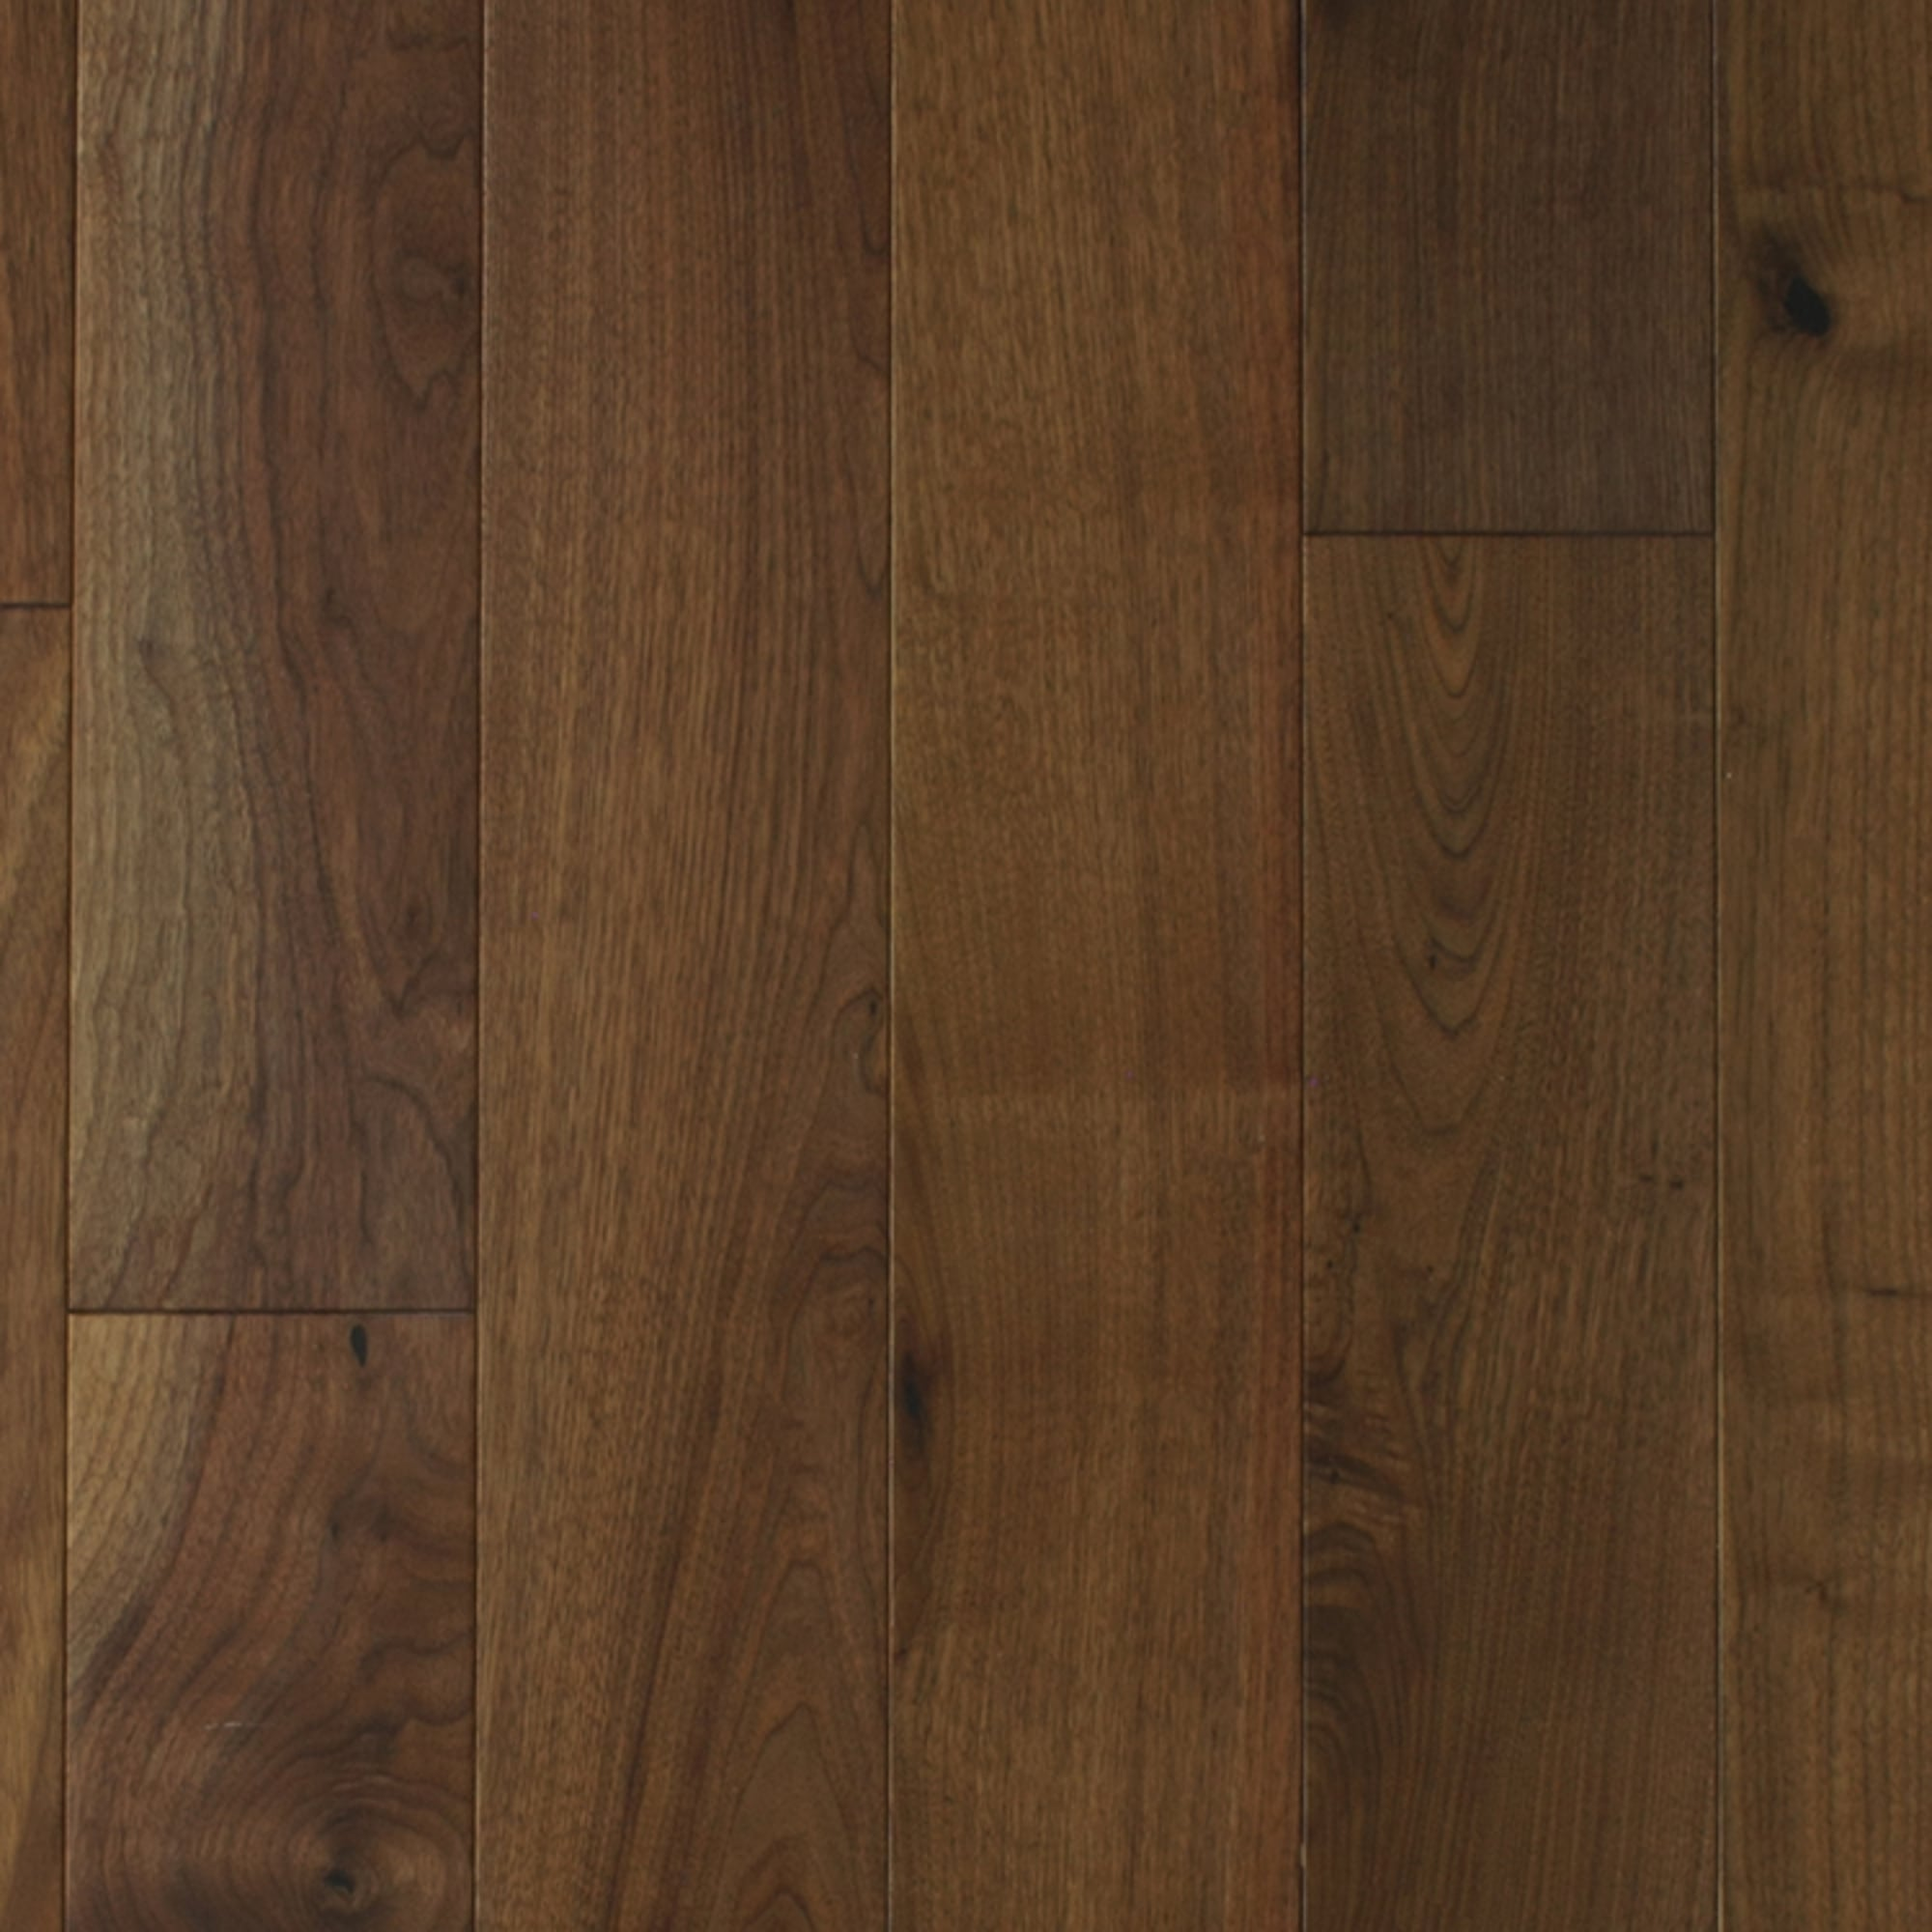 Wood flooring multi layer 18x150mm lacquered engineered for Walnut flooring